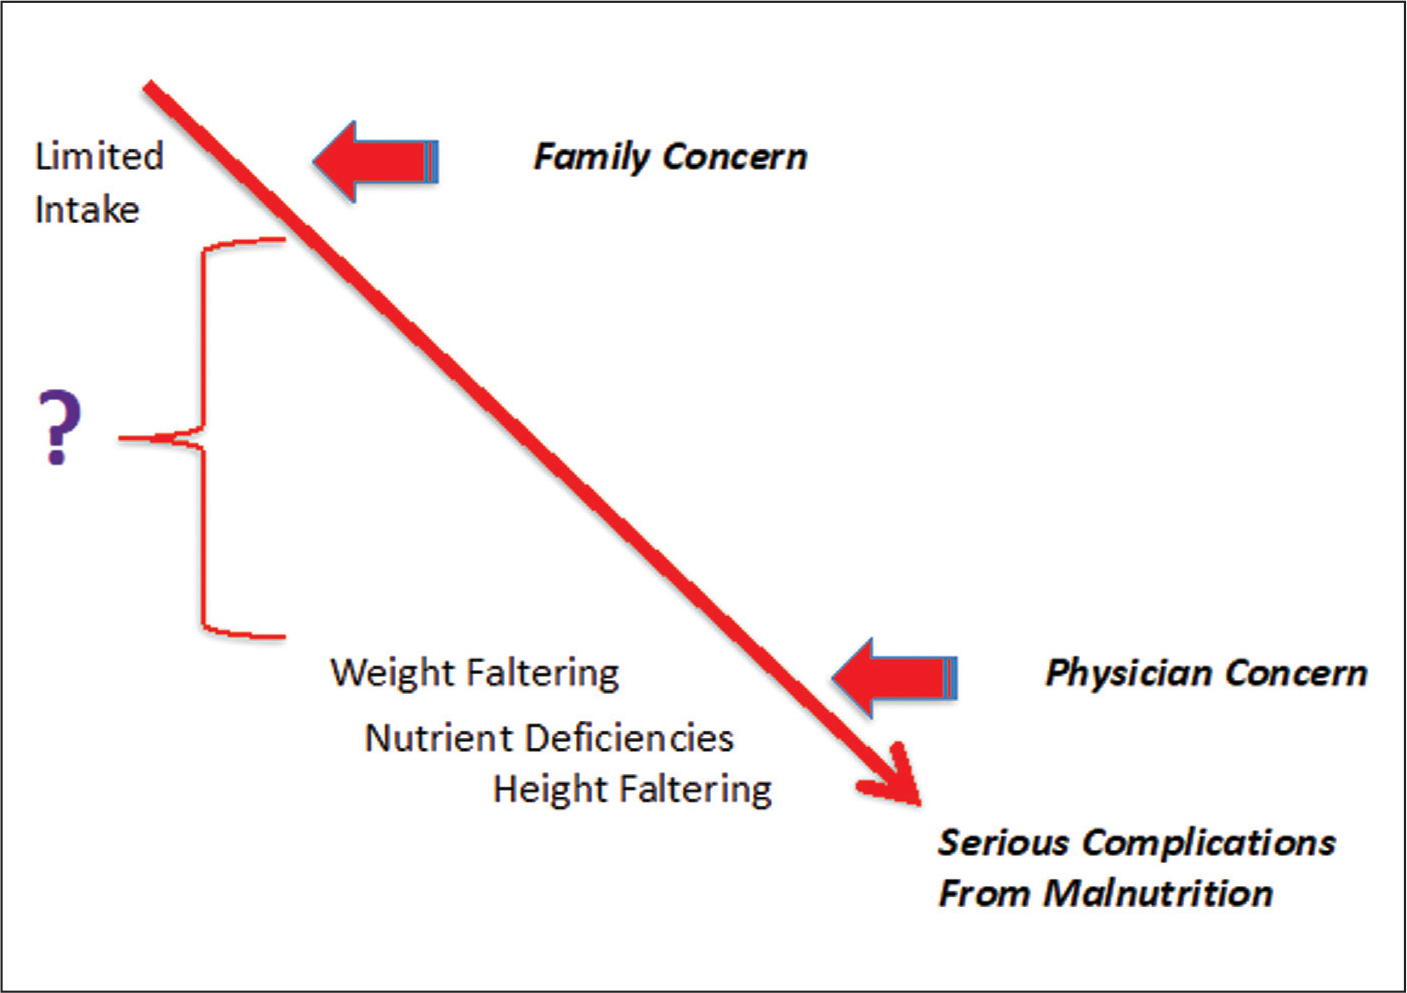 Continuum from parental concern to physician concern over malnourishment in early childhood feeding.